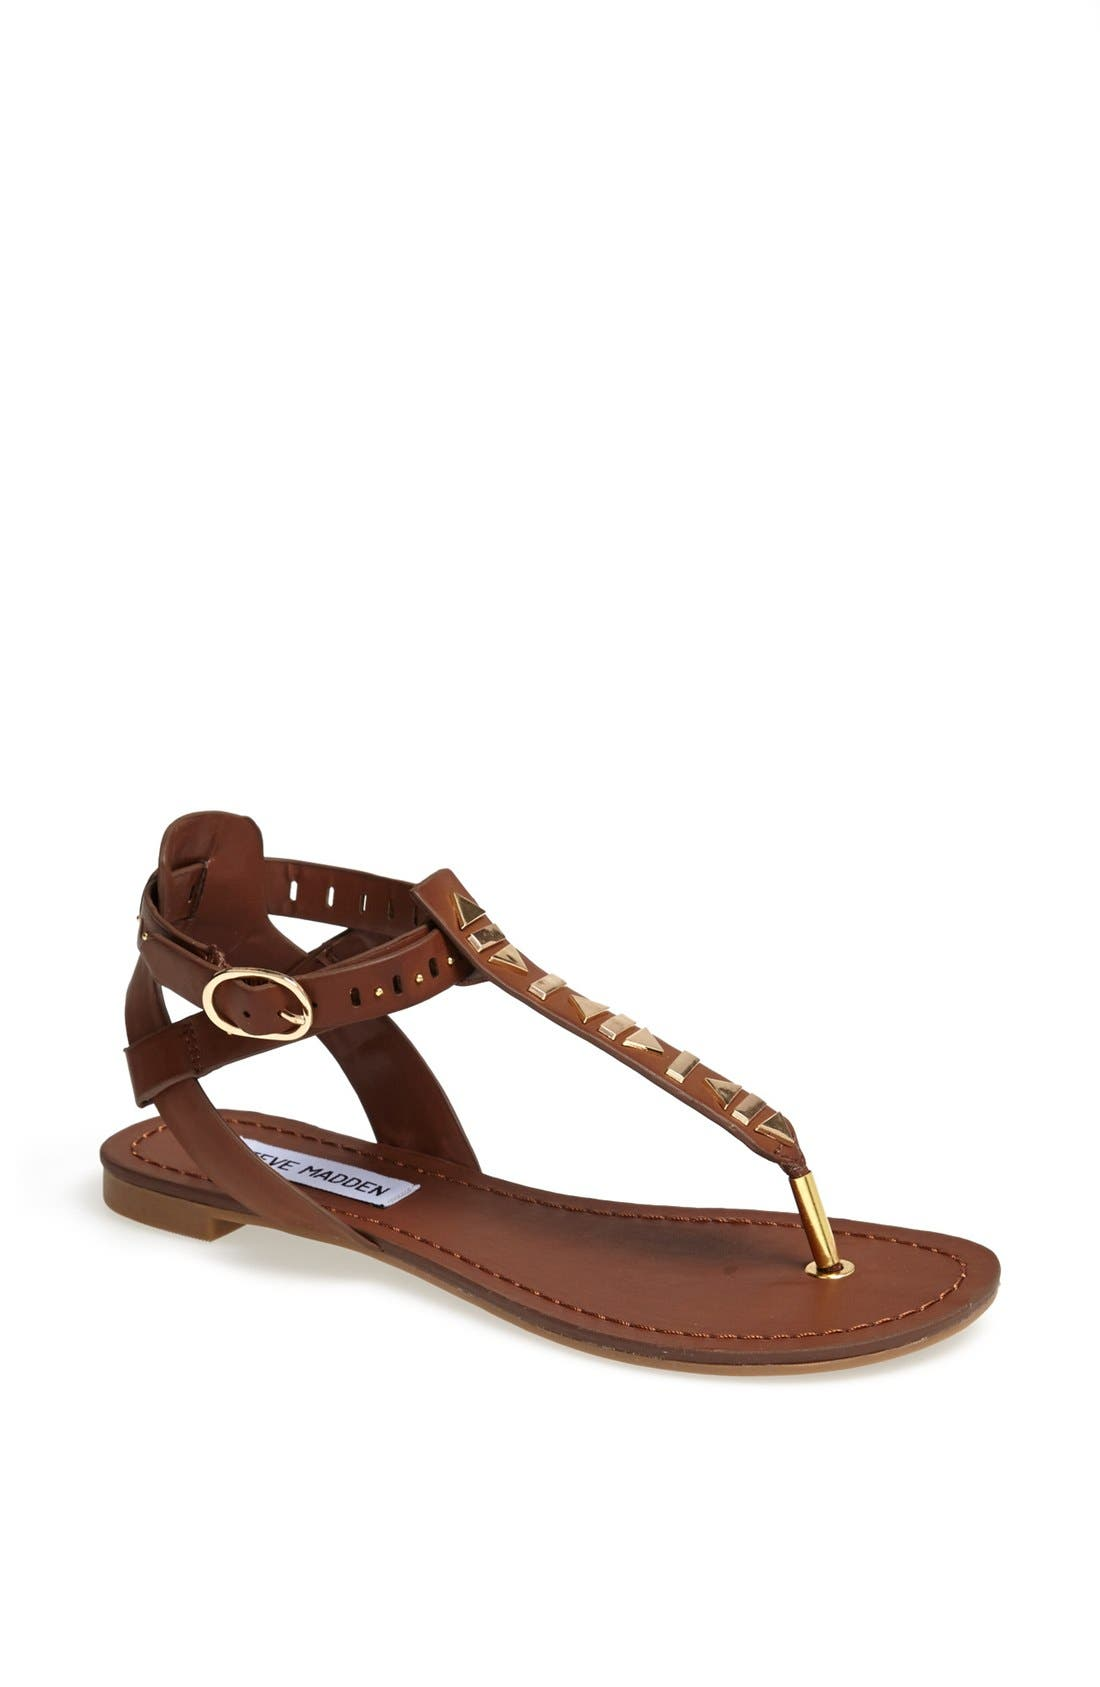 Alternate Image 1 Selected - Steve Madden 'Zeta' Studded Sandal